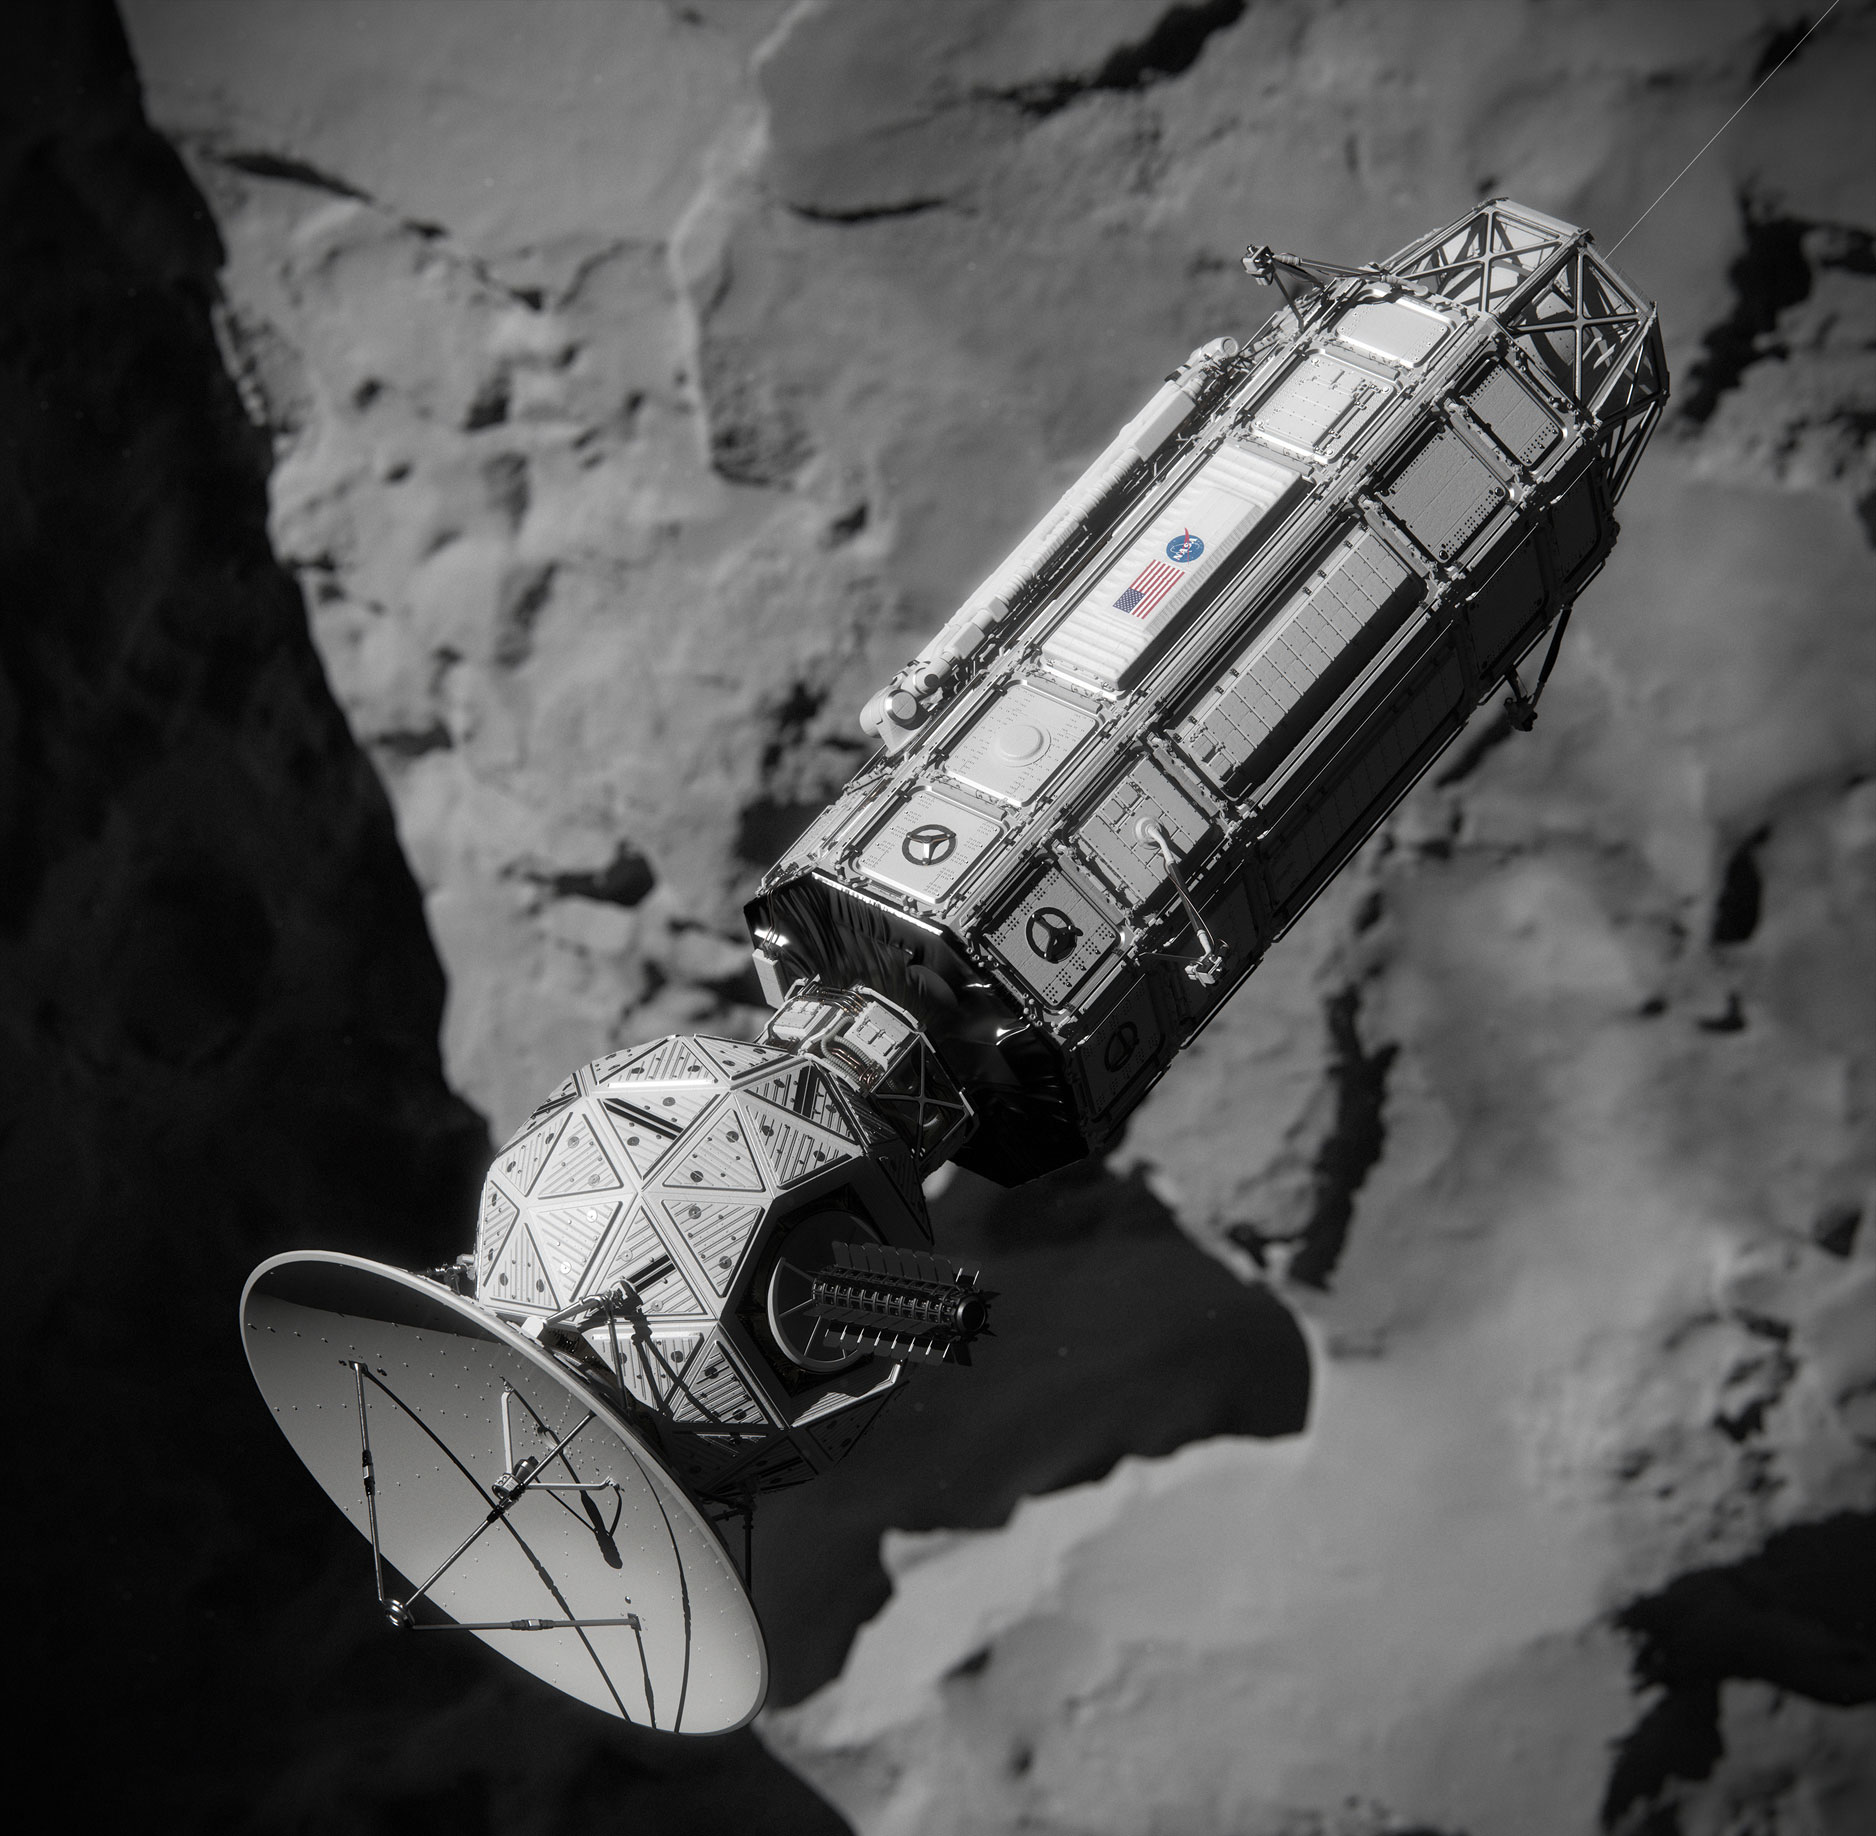 NASA Comet Hitchhiker Would Take Tour of Small Asteroids ...